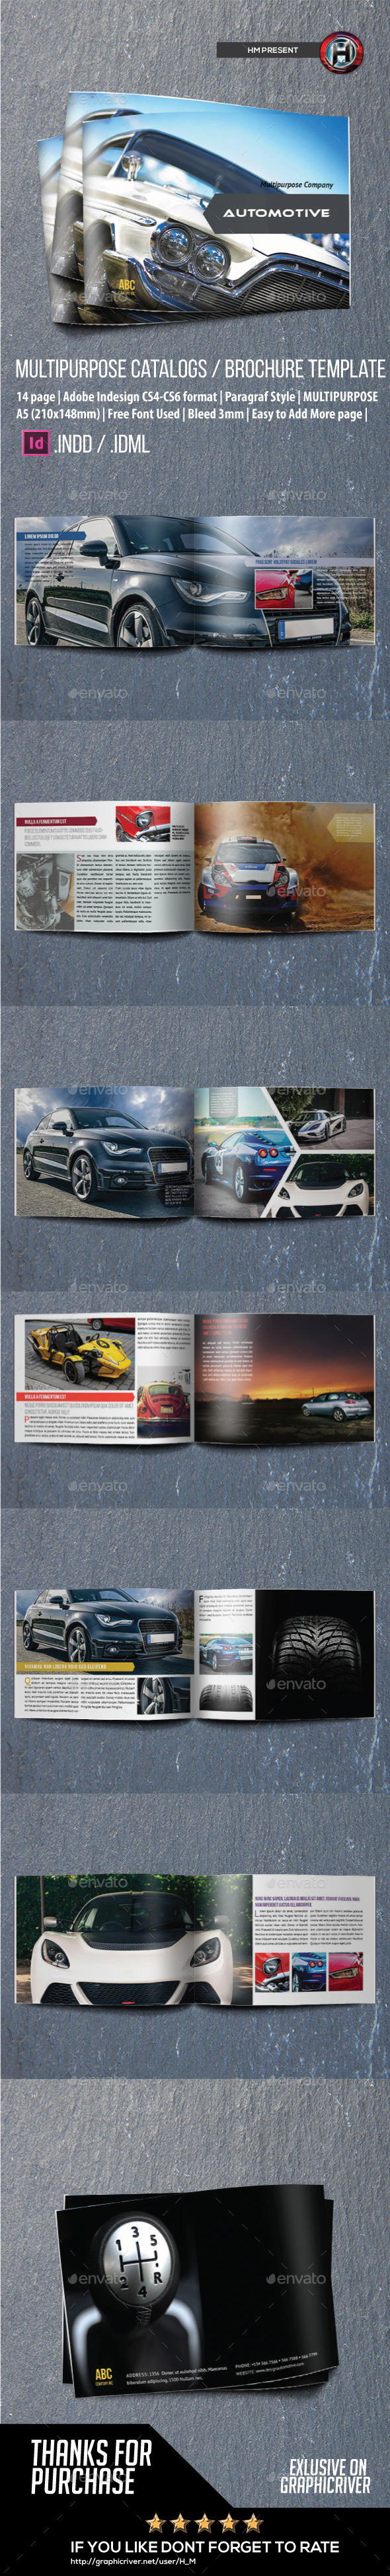 GraphicRiver Automotive Catalog Brochure Indesign Template 9327786